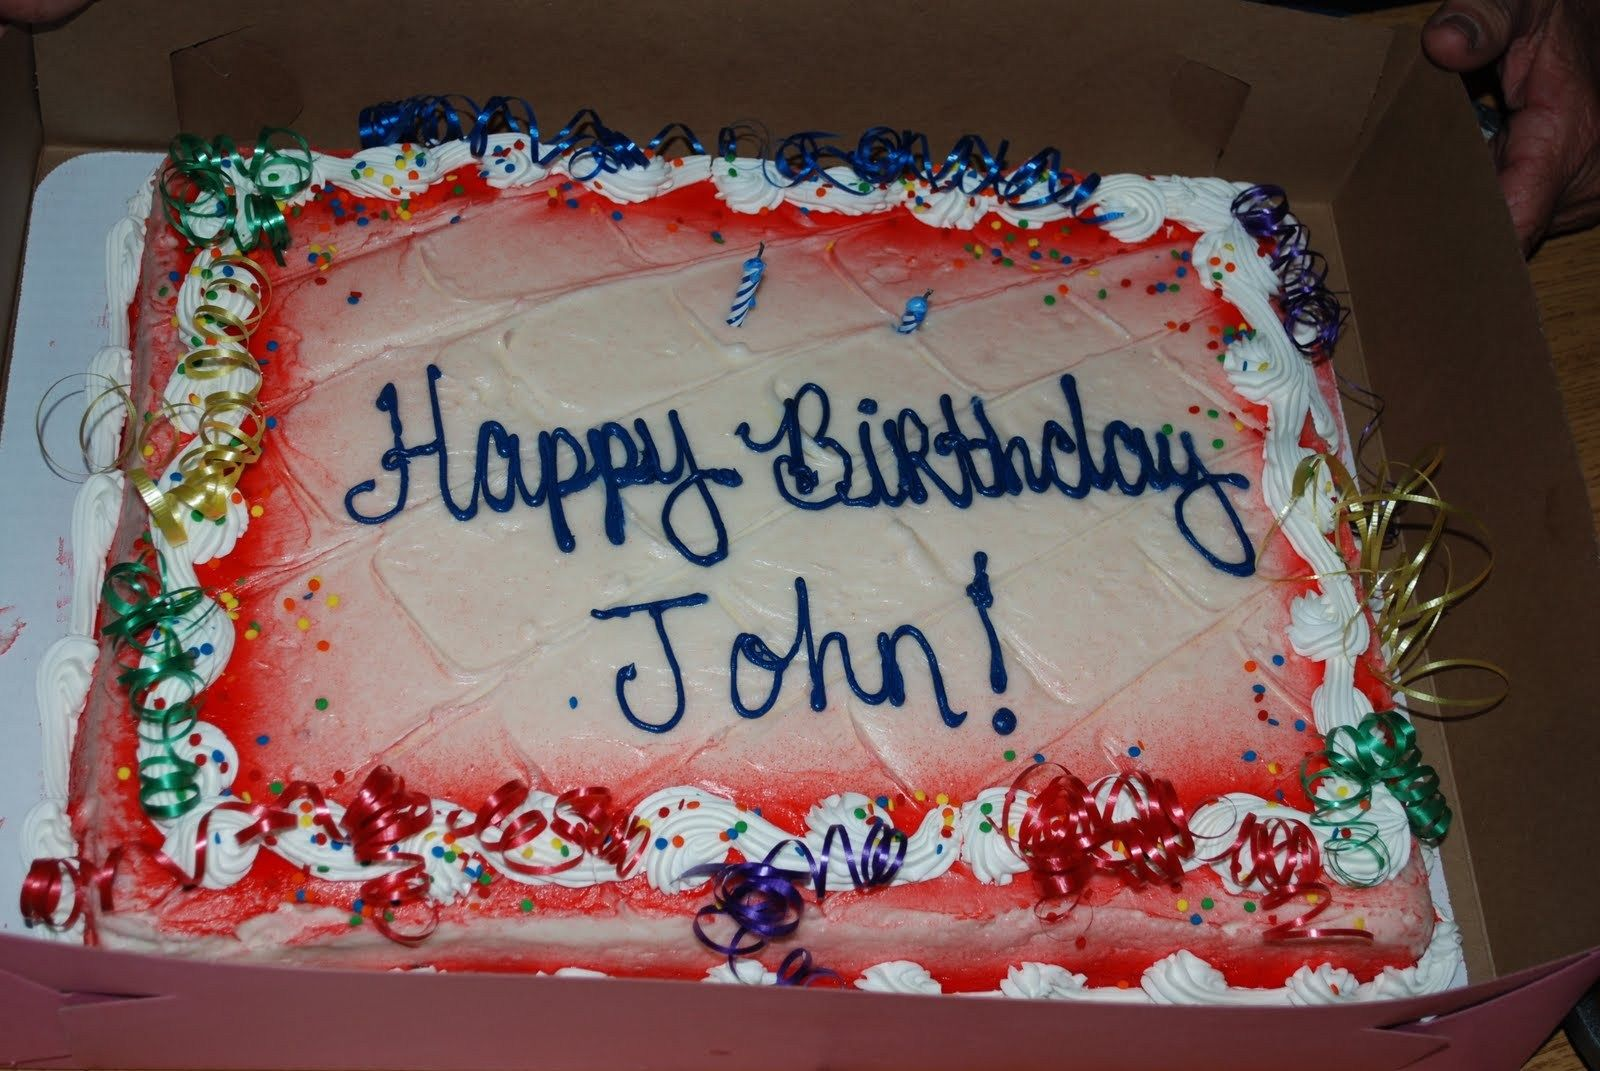 Incredible 27 Beautiful Image Of Happy Birthday John Cake With Images Personalised Birthday Cards Sponlily Jamesorg